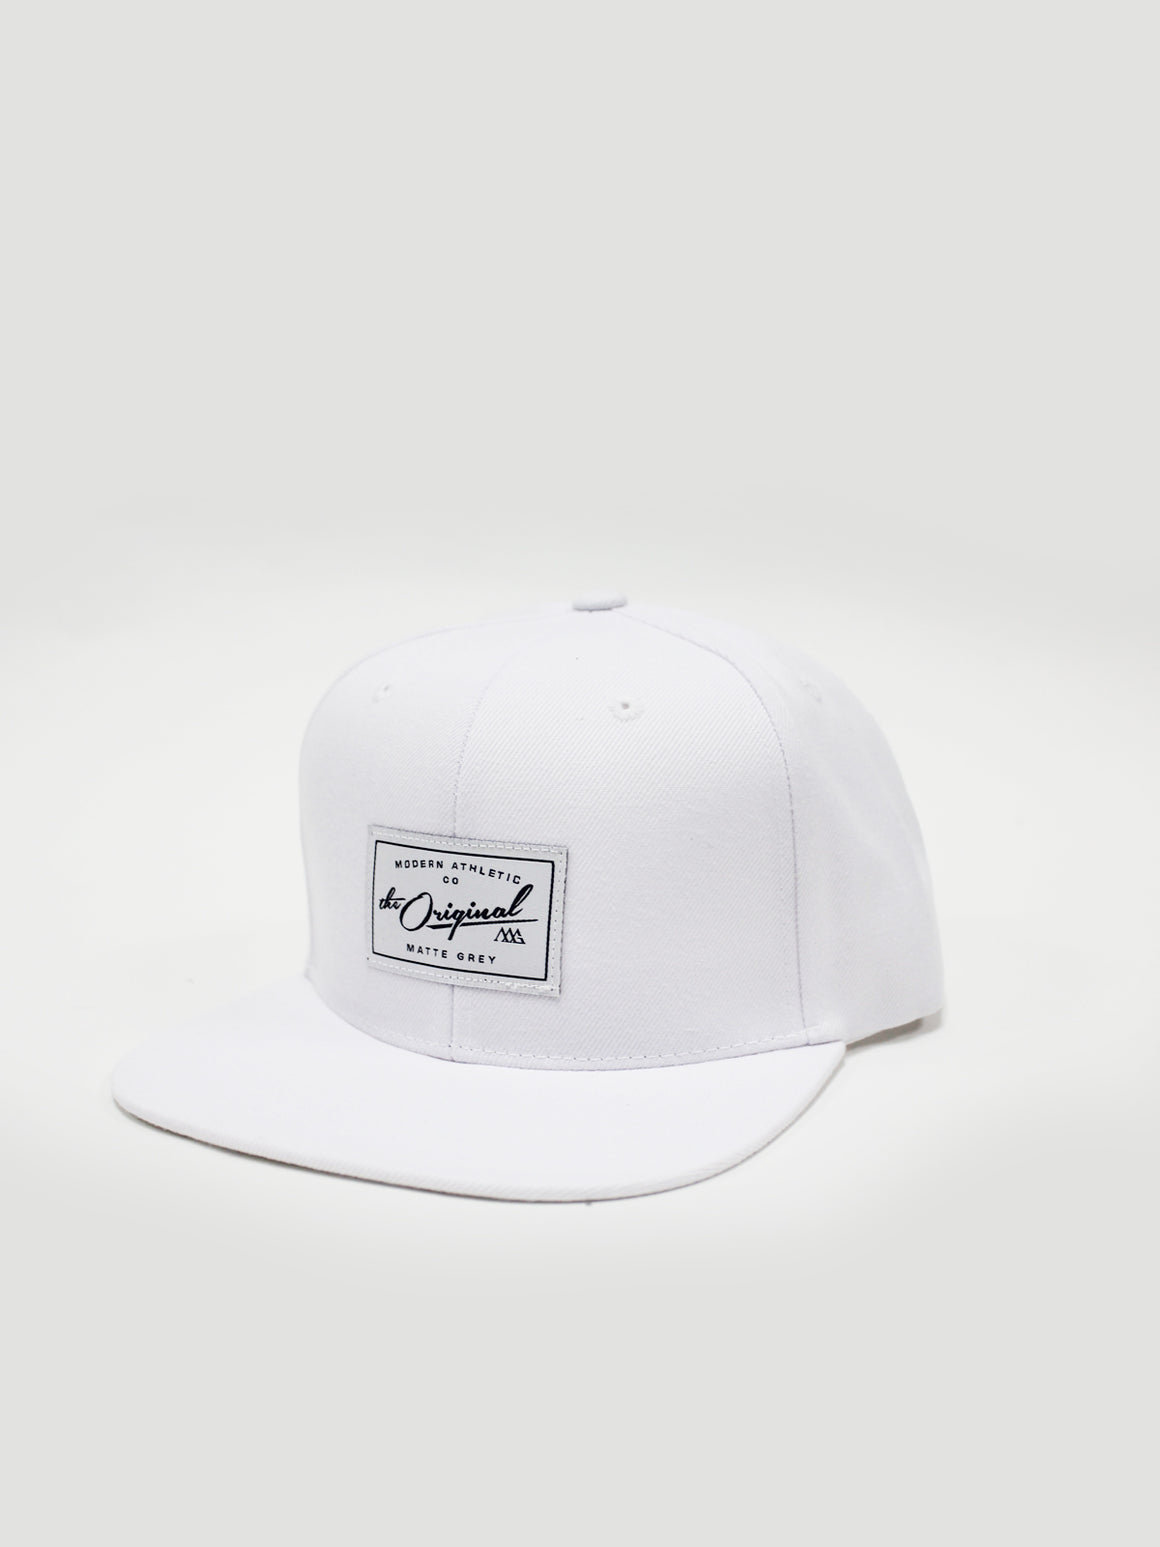 Vintage Badge Snapback - White (Malibu)